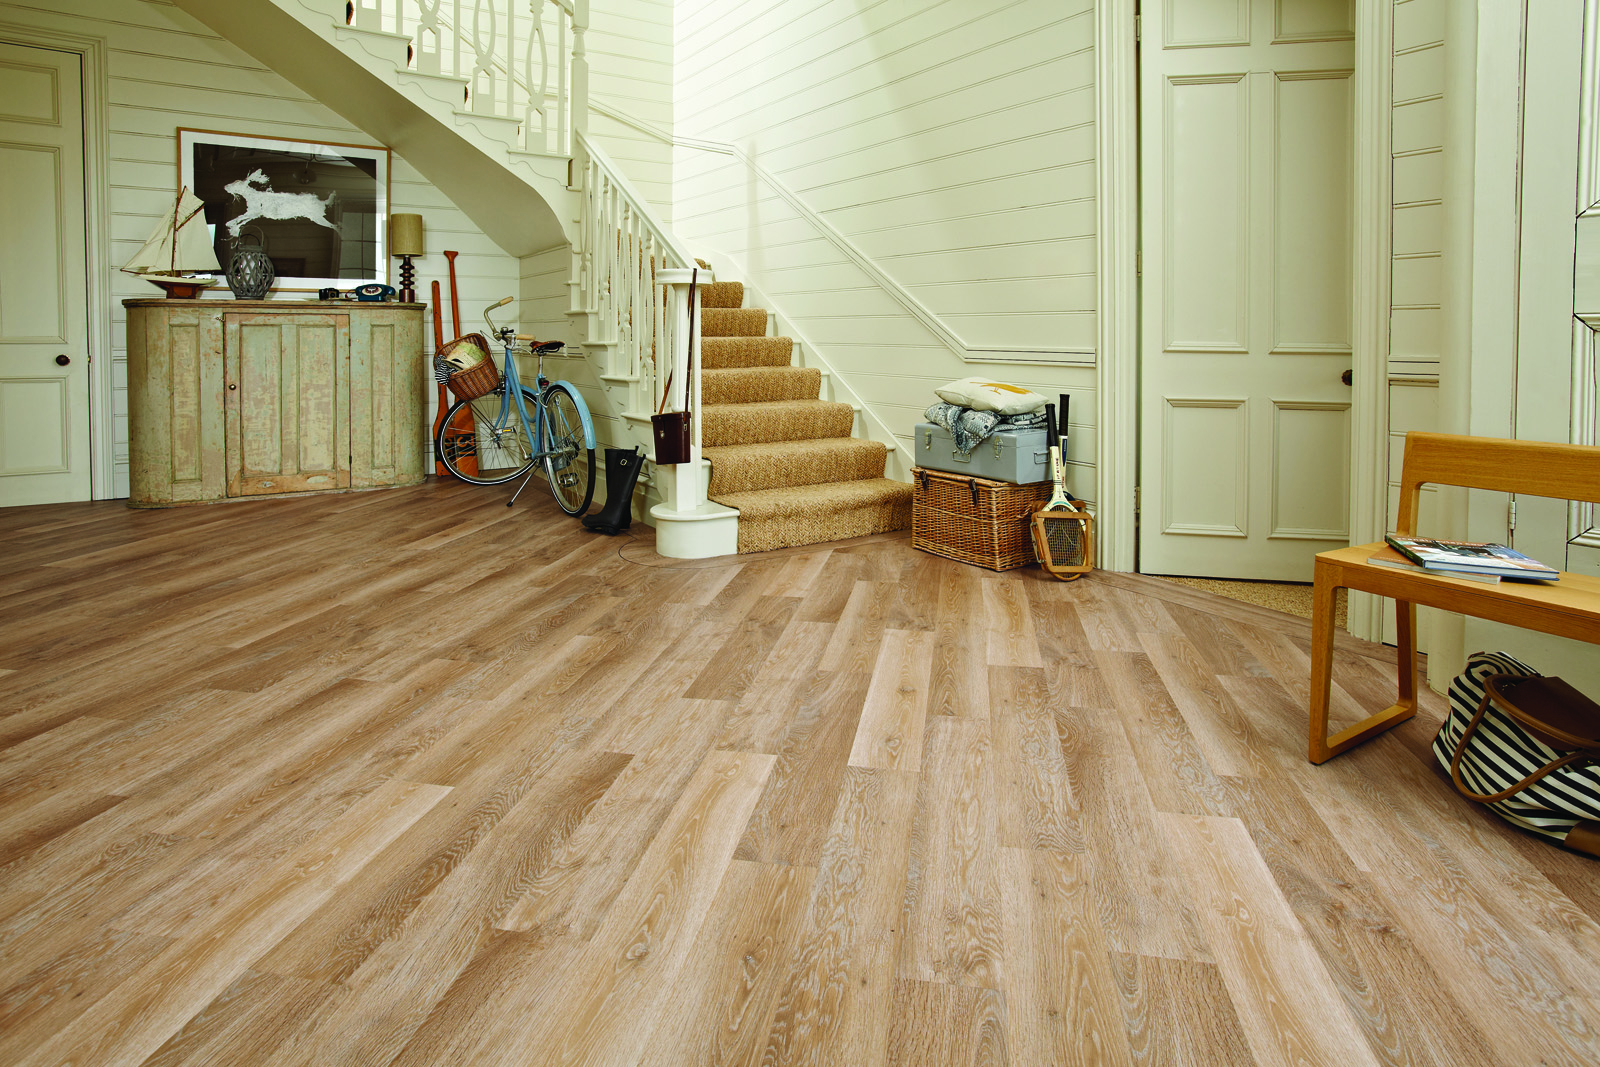 Walnut tile flooring